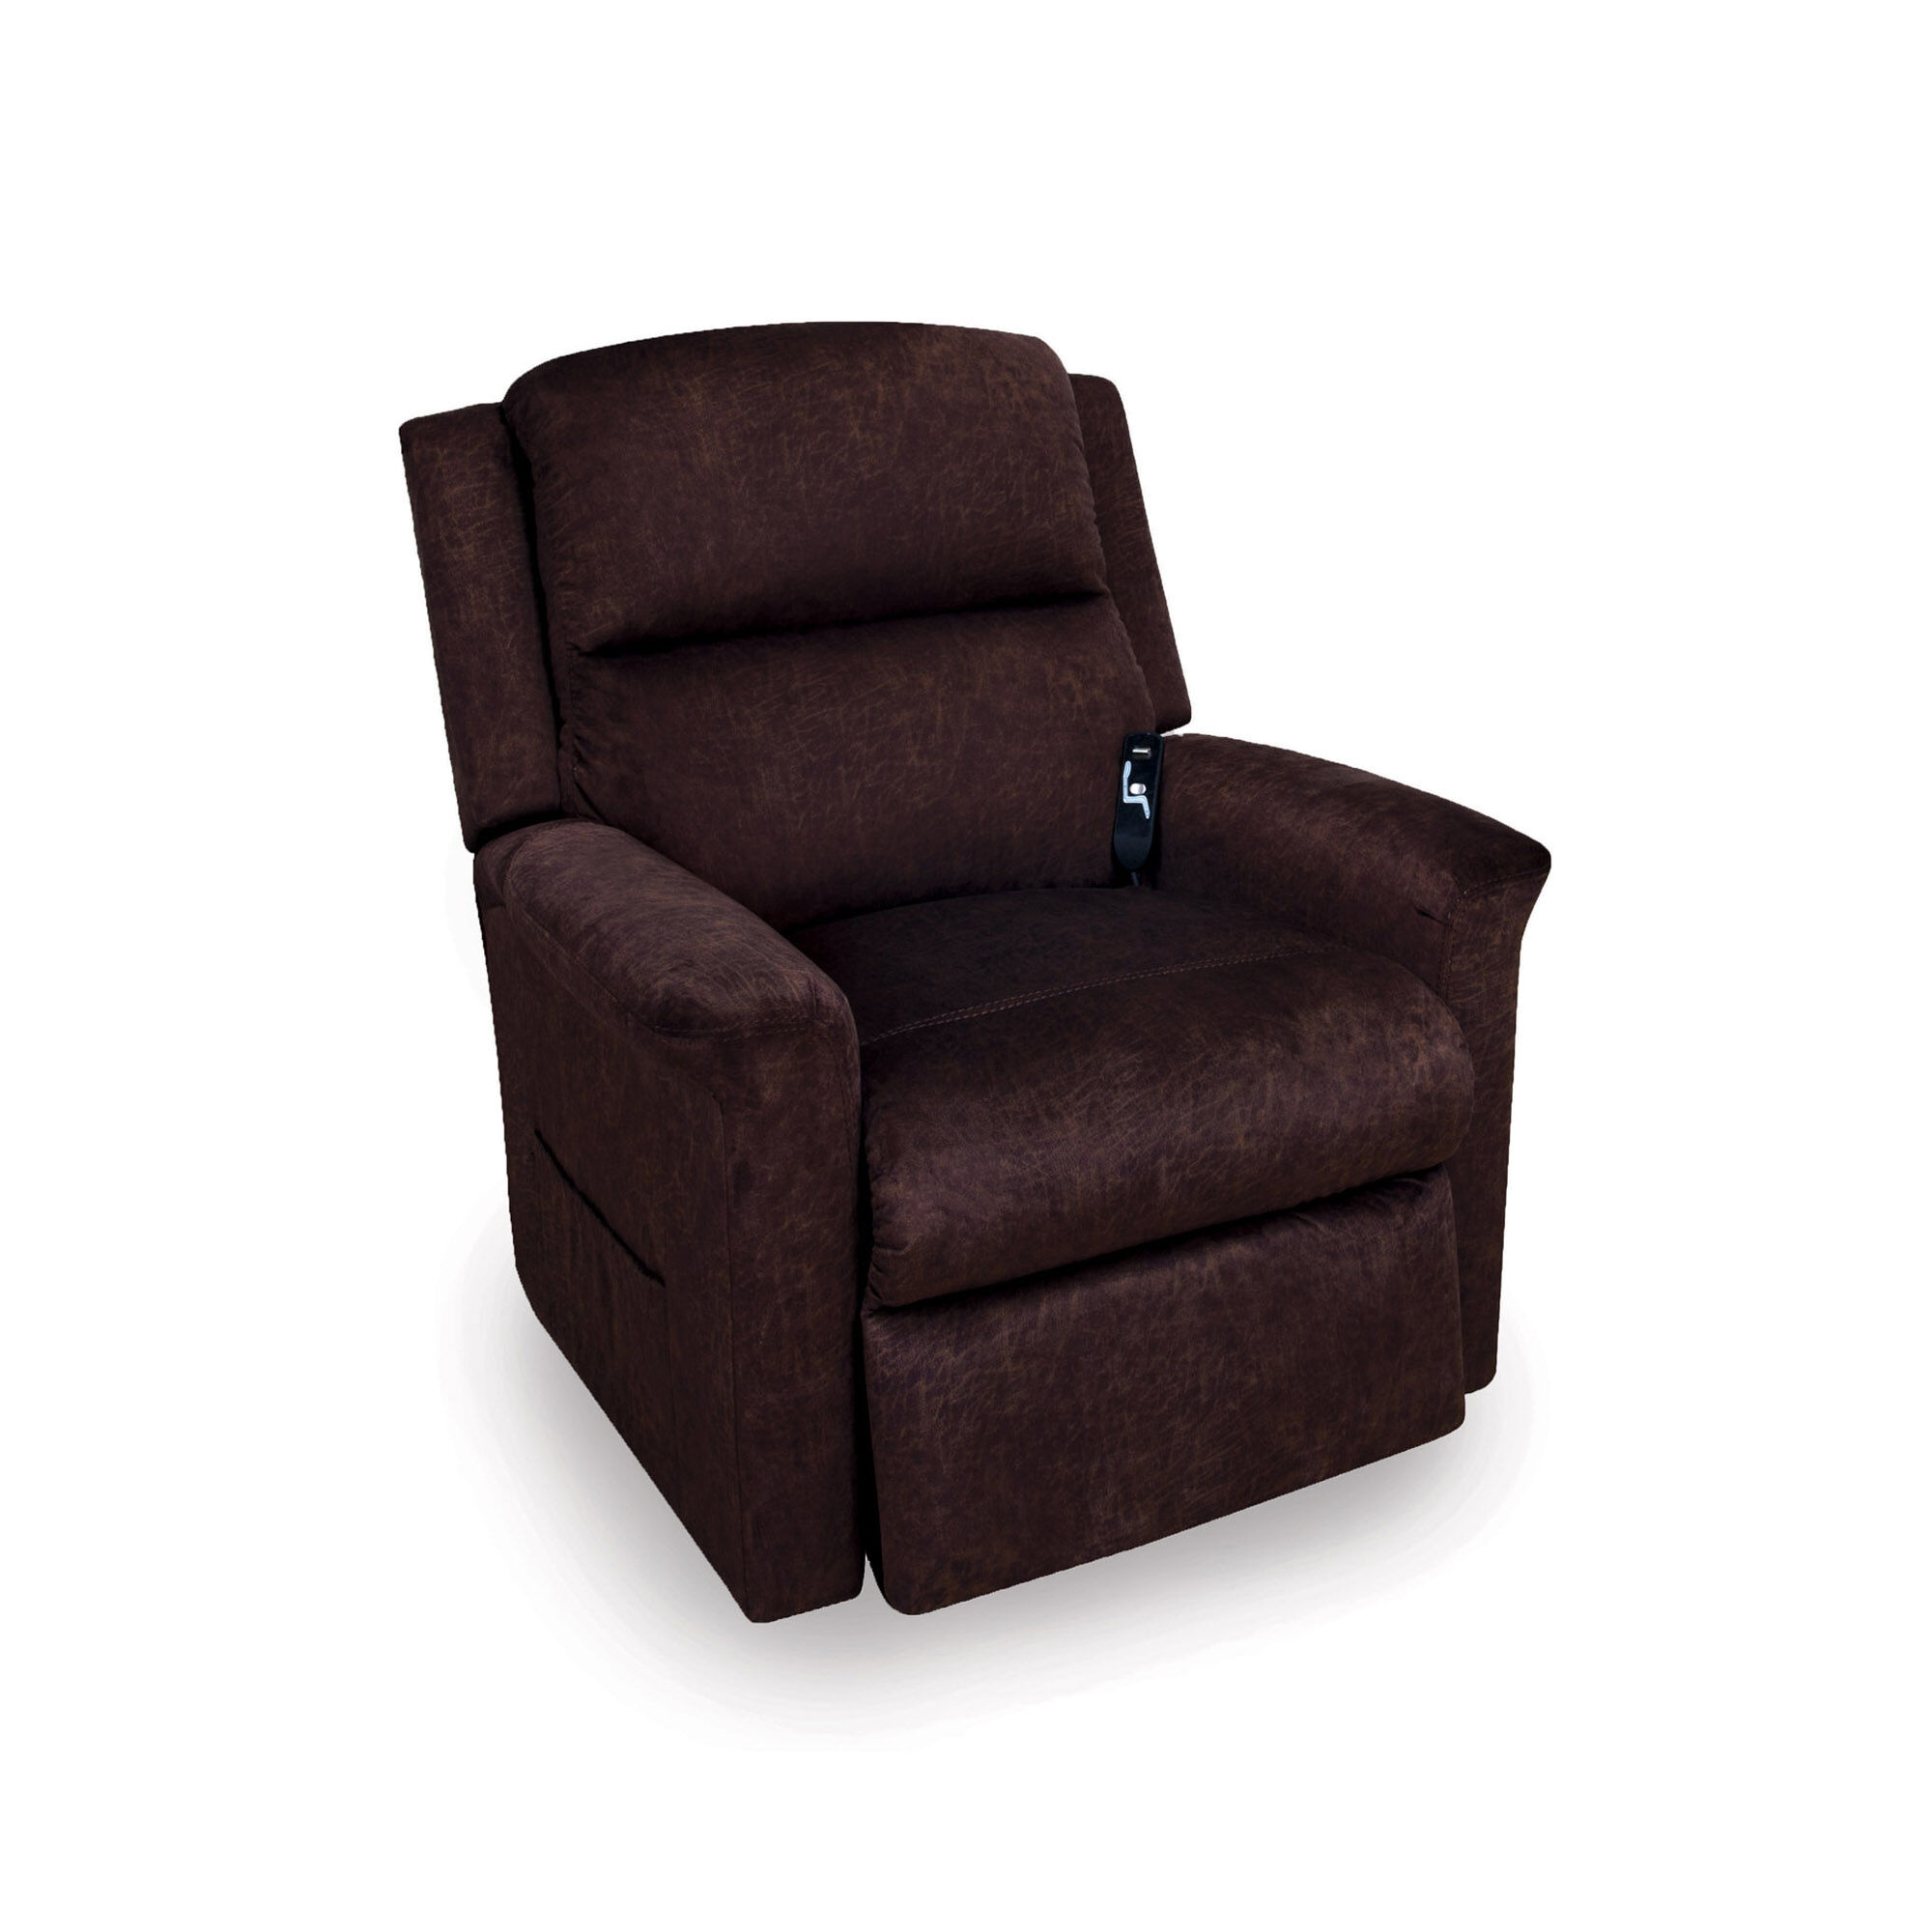 Gentil Power Lift Recliner